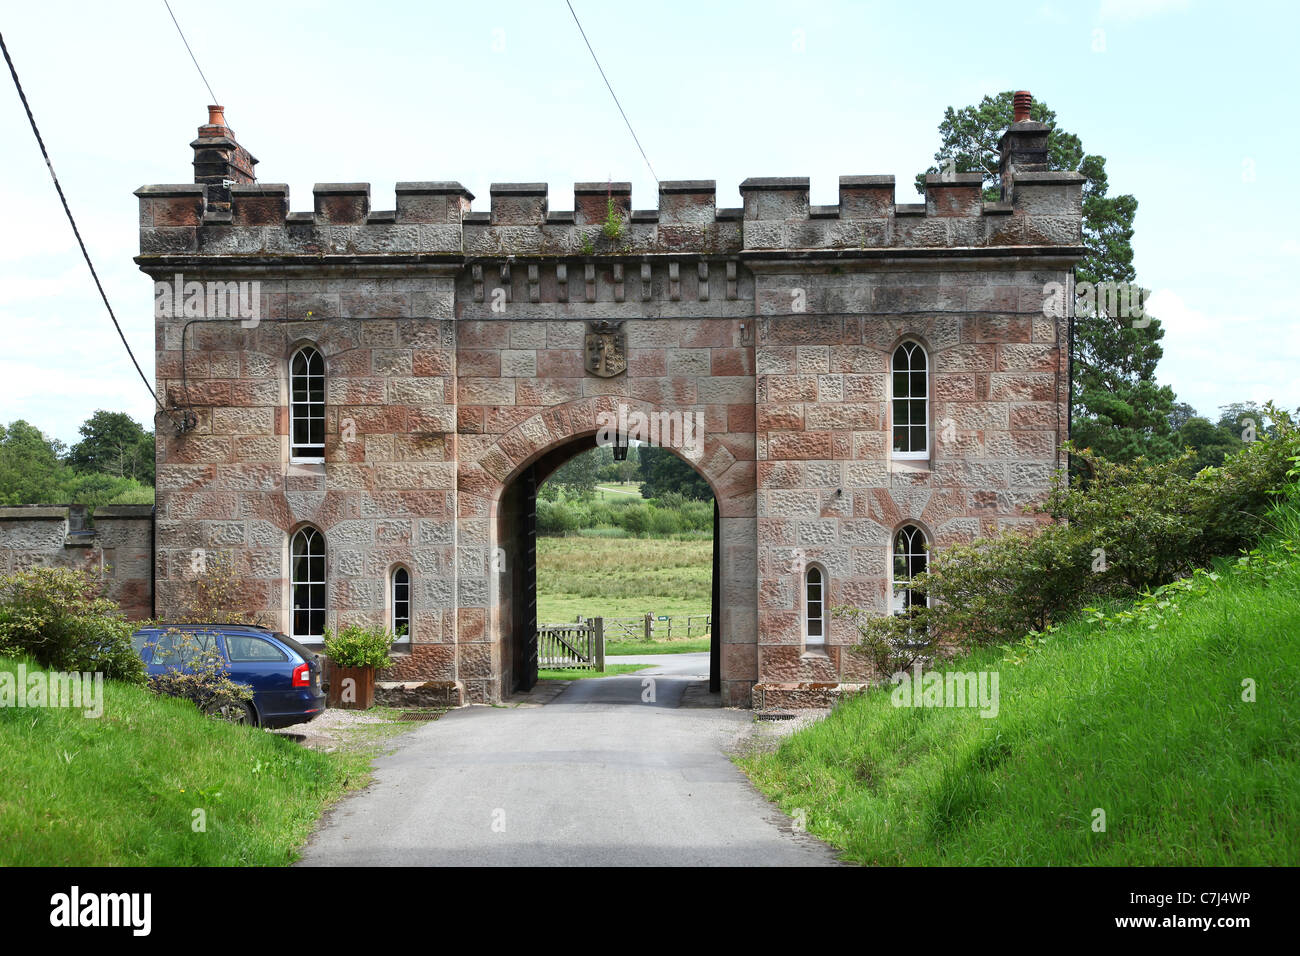 Somerset Lodge South gate house or gatehouse at Cholmondeley Castle Cheshire, England, UK Stock Photo